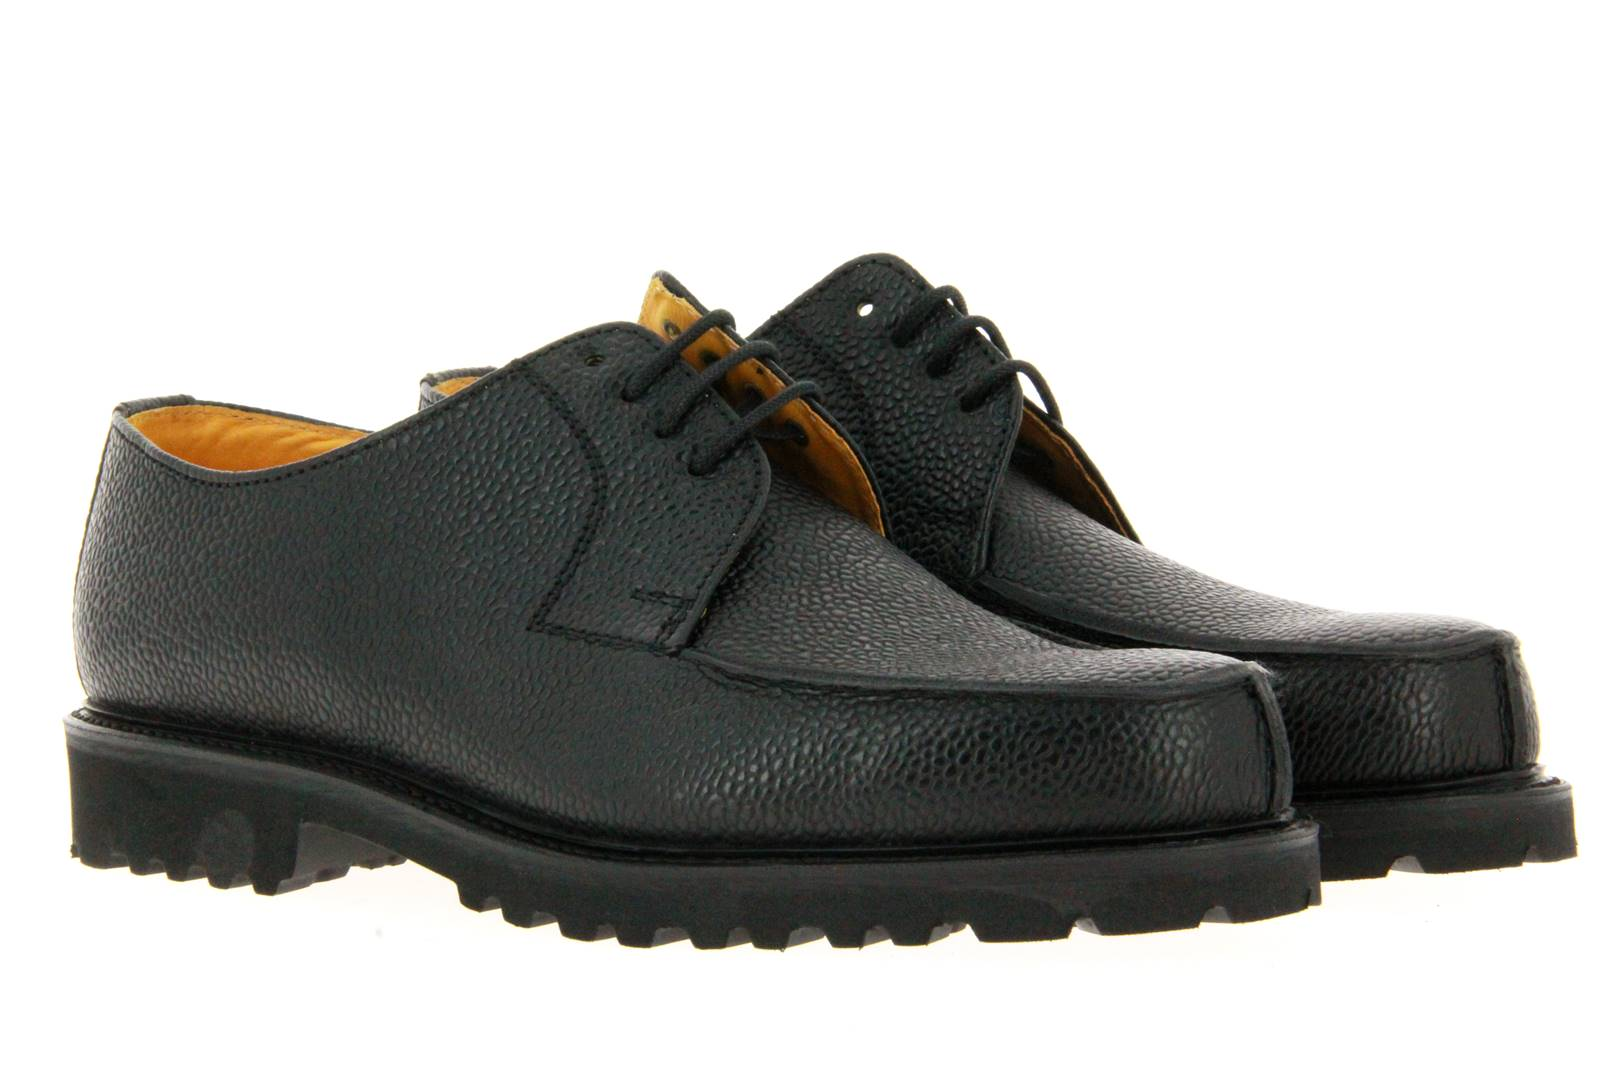 Ludwig Reiter lace-up WACHAUER SCOTCH GRAIN BLACK